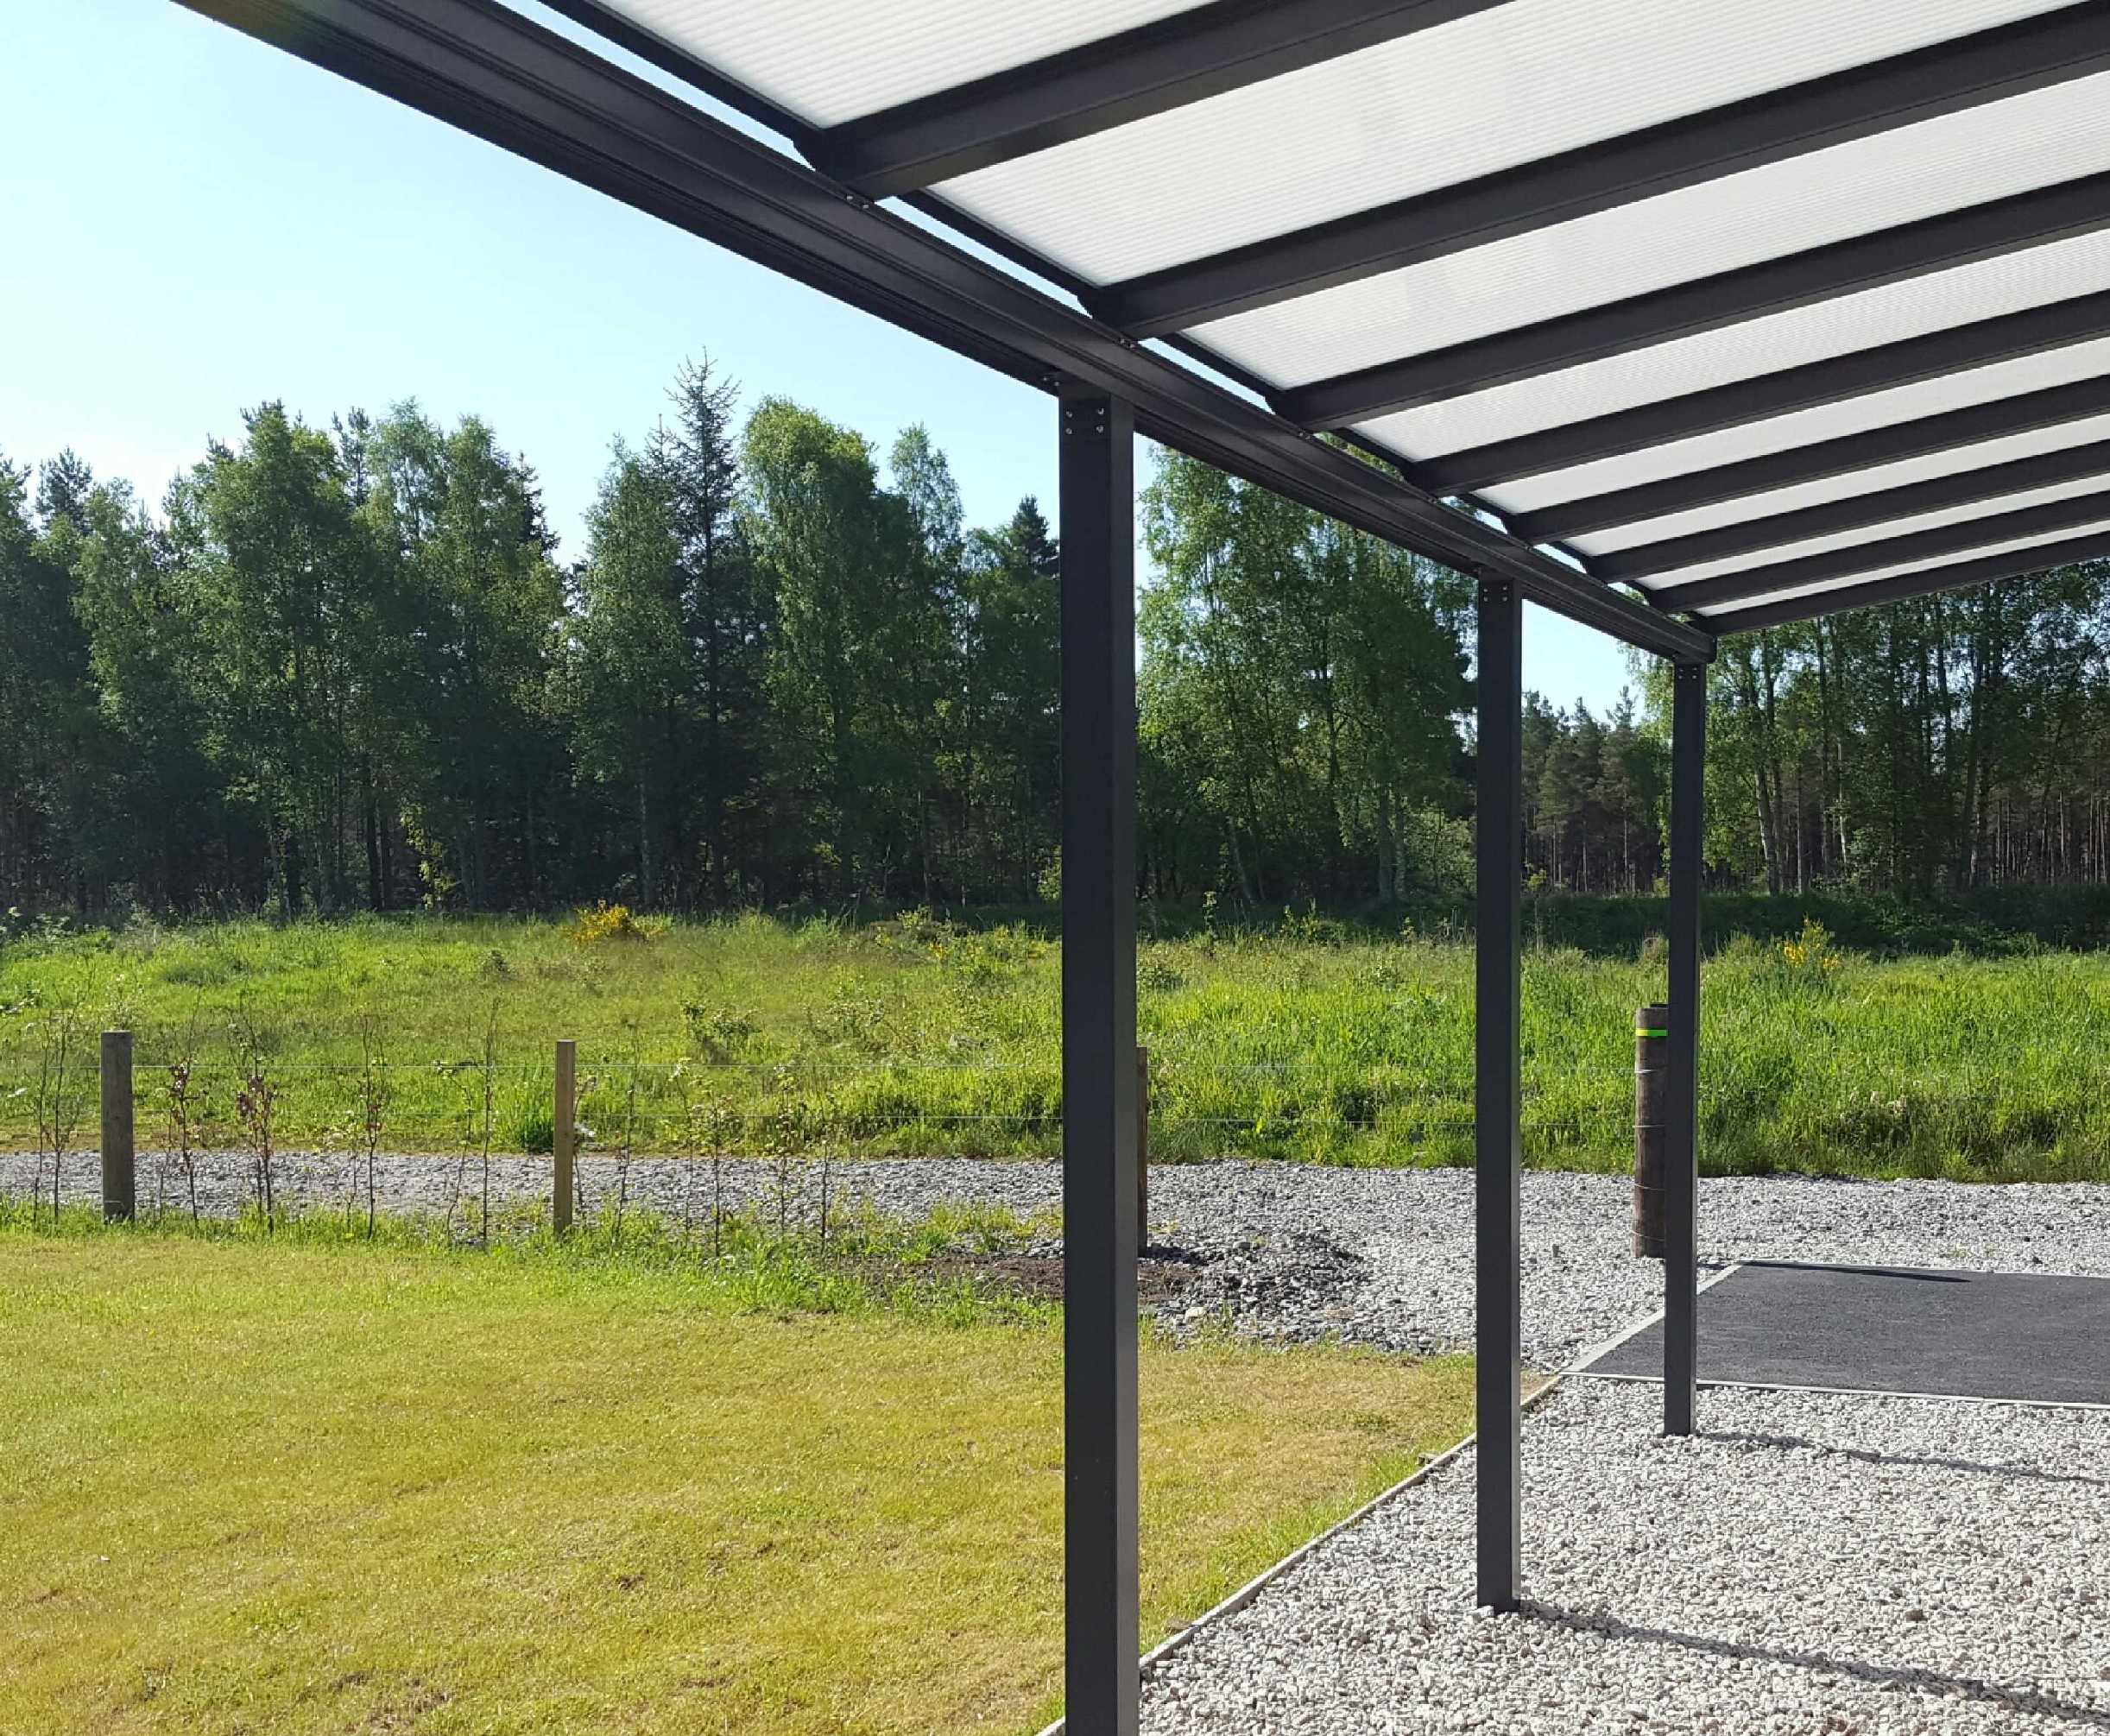 Omega Smart Lean-To Canopy, Anthracite Grey, 16mm Polycarbonate Glazing - 6.0m (W) x 2.5m (P), (3) Supporting Posts